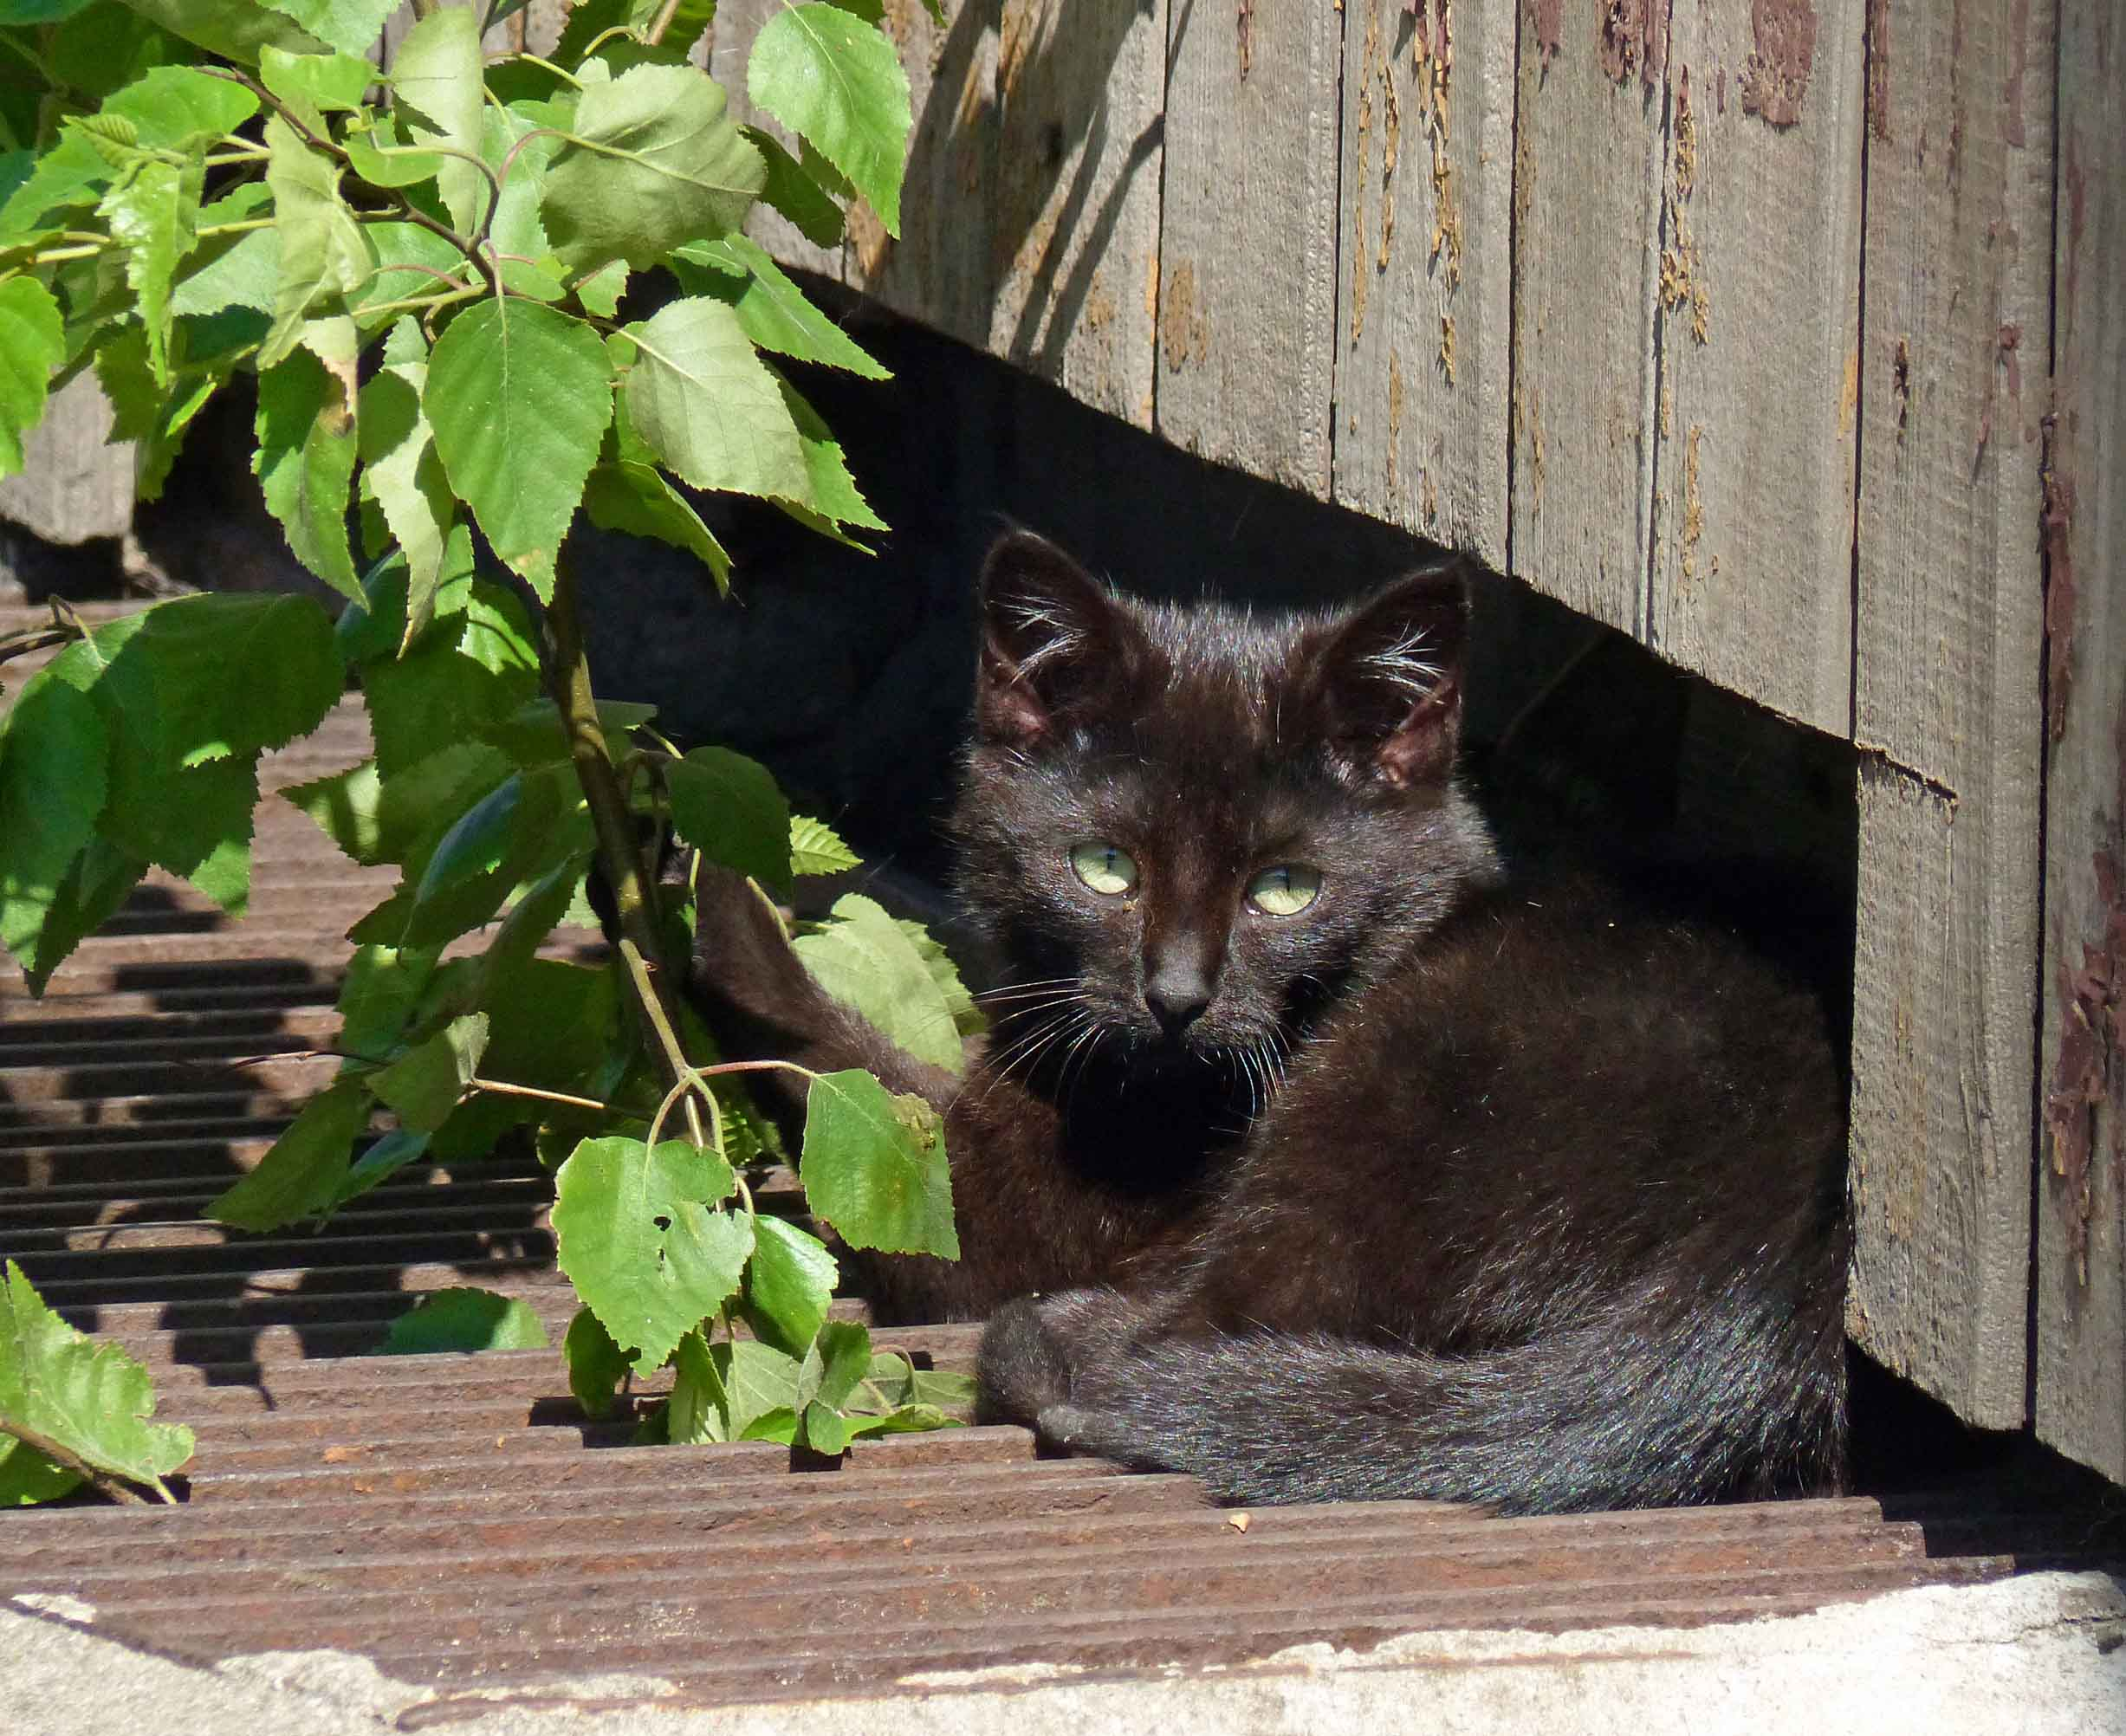 Small black cat by a fence